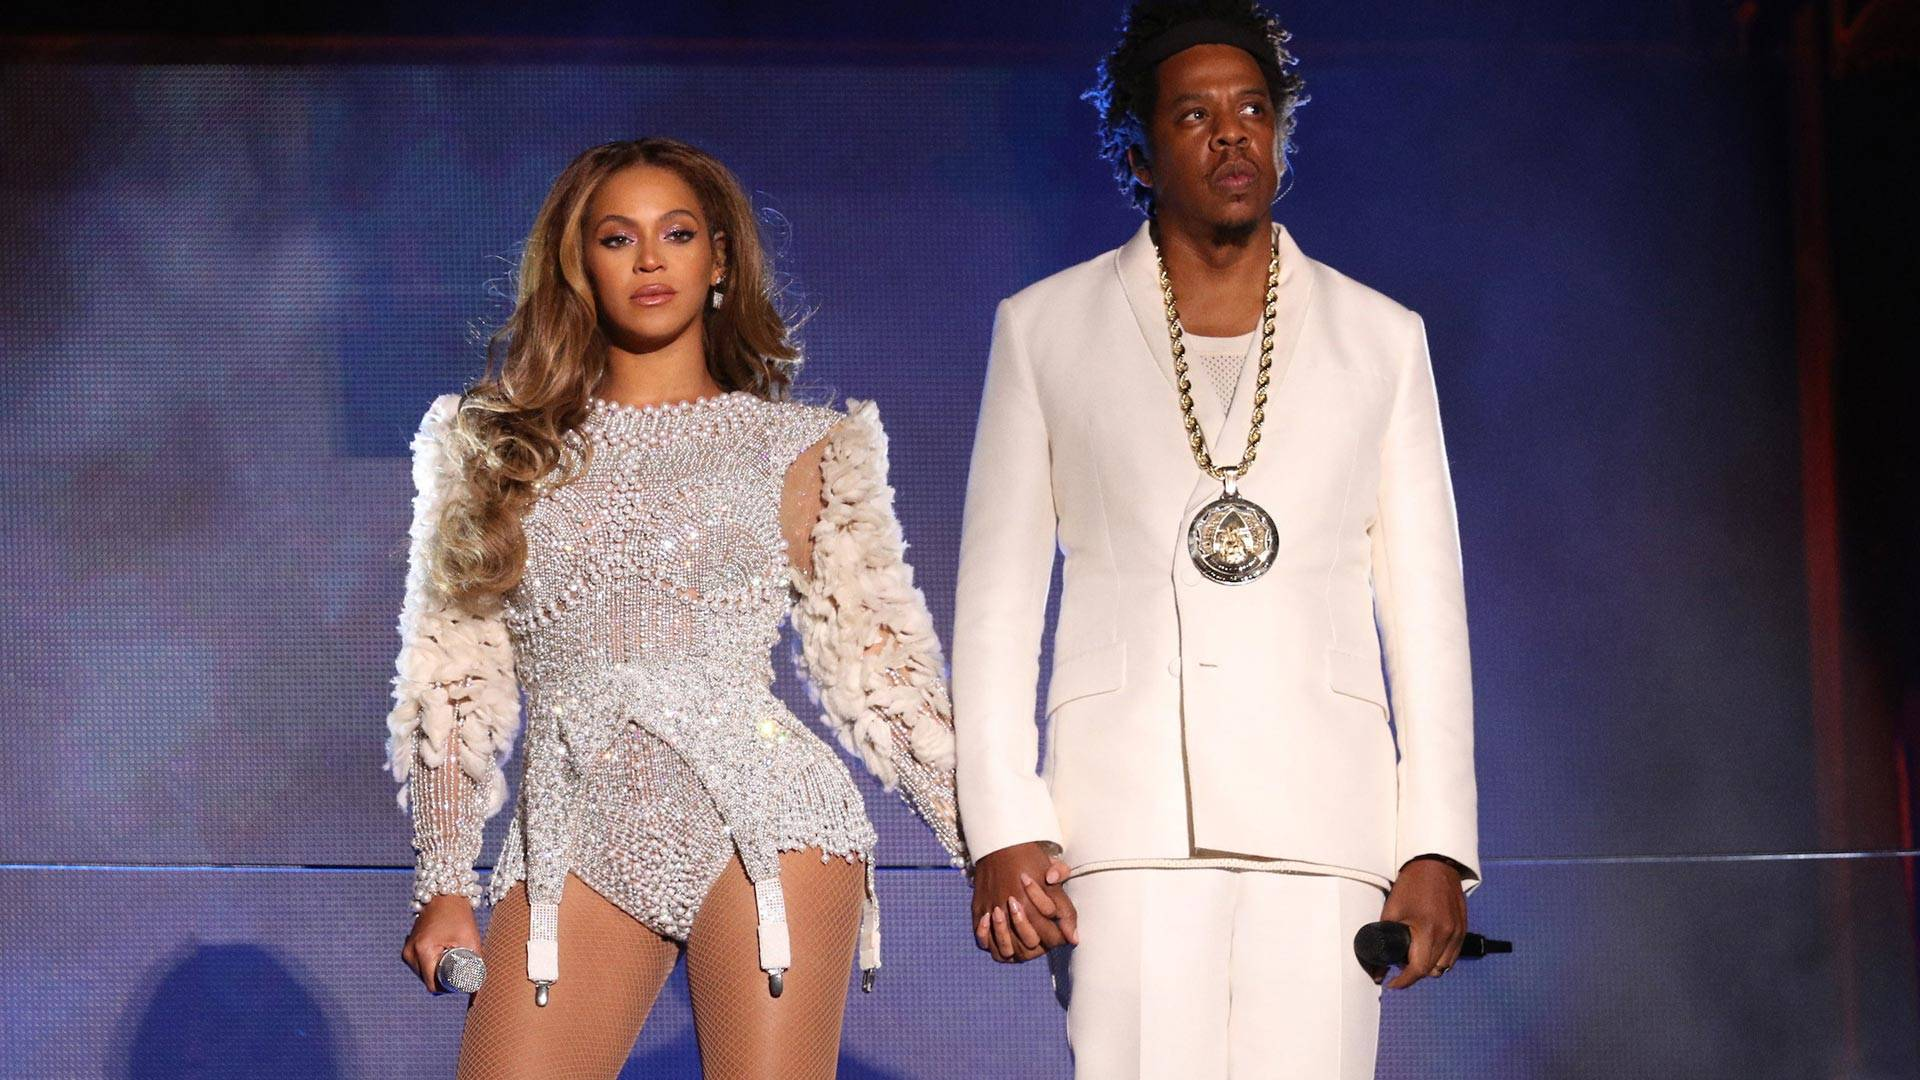 Beyonce and Jay-Z perform on the 'On The Run II' tour at Levi's Stadium on Sept. 29, 2018 in Santa Clara, California.  Raven Varona / Parkwood / PictureGroup